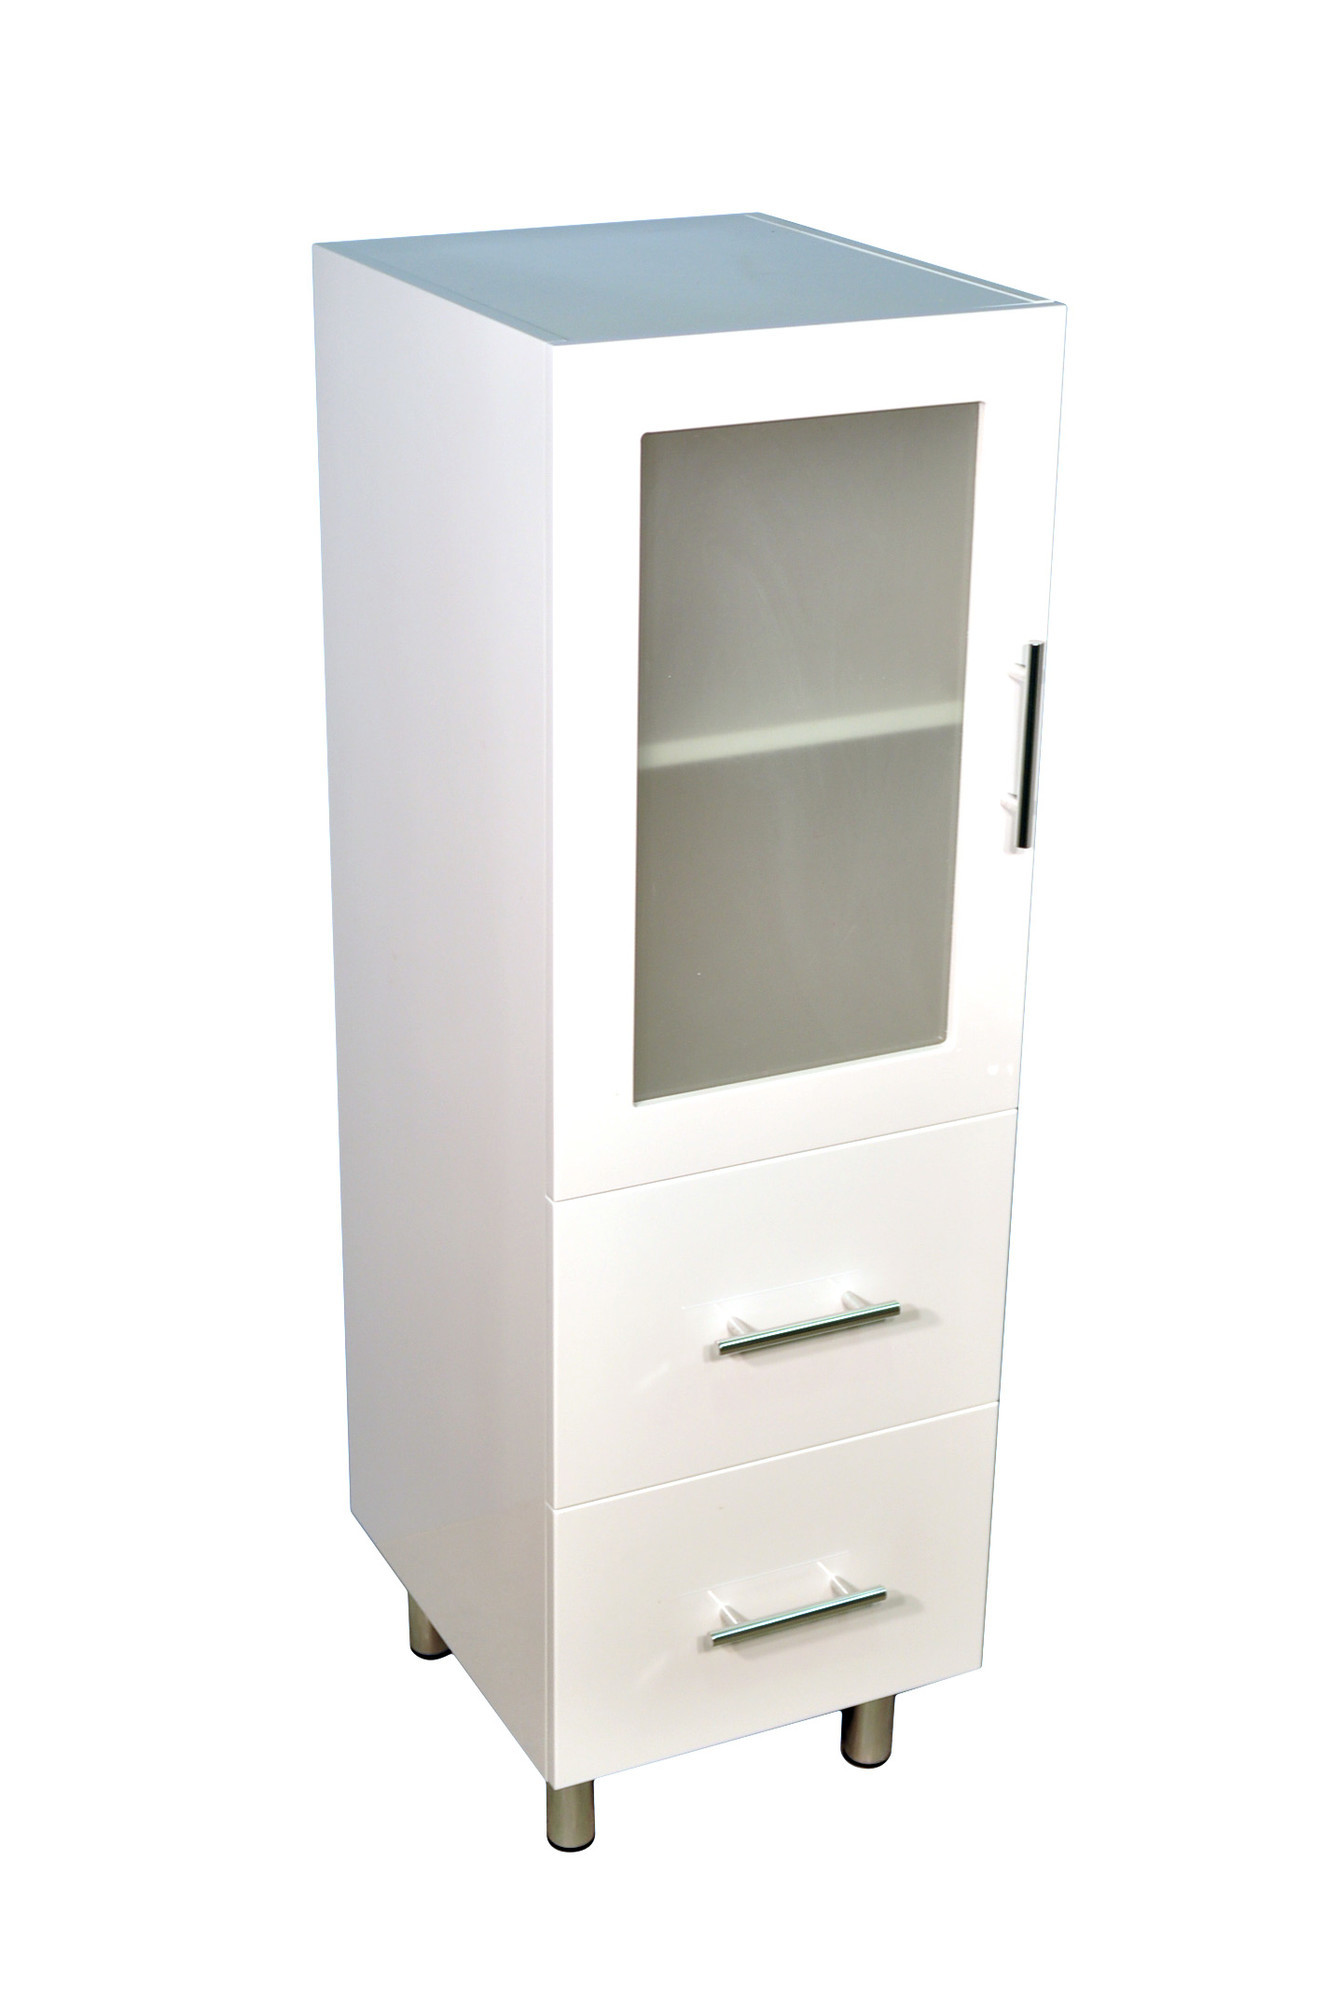 new 1200 tall boy bathroom cabinet with two drawers ebay. Black Bedroom Furniture Sets. Home Design Ideas